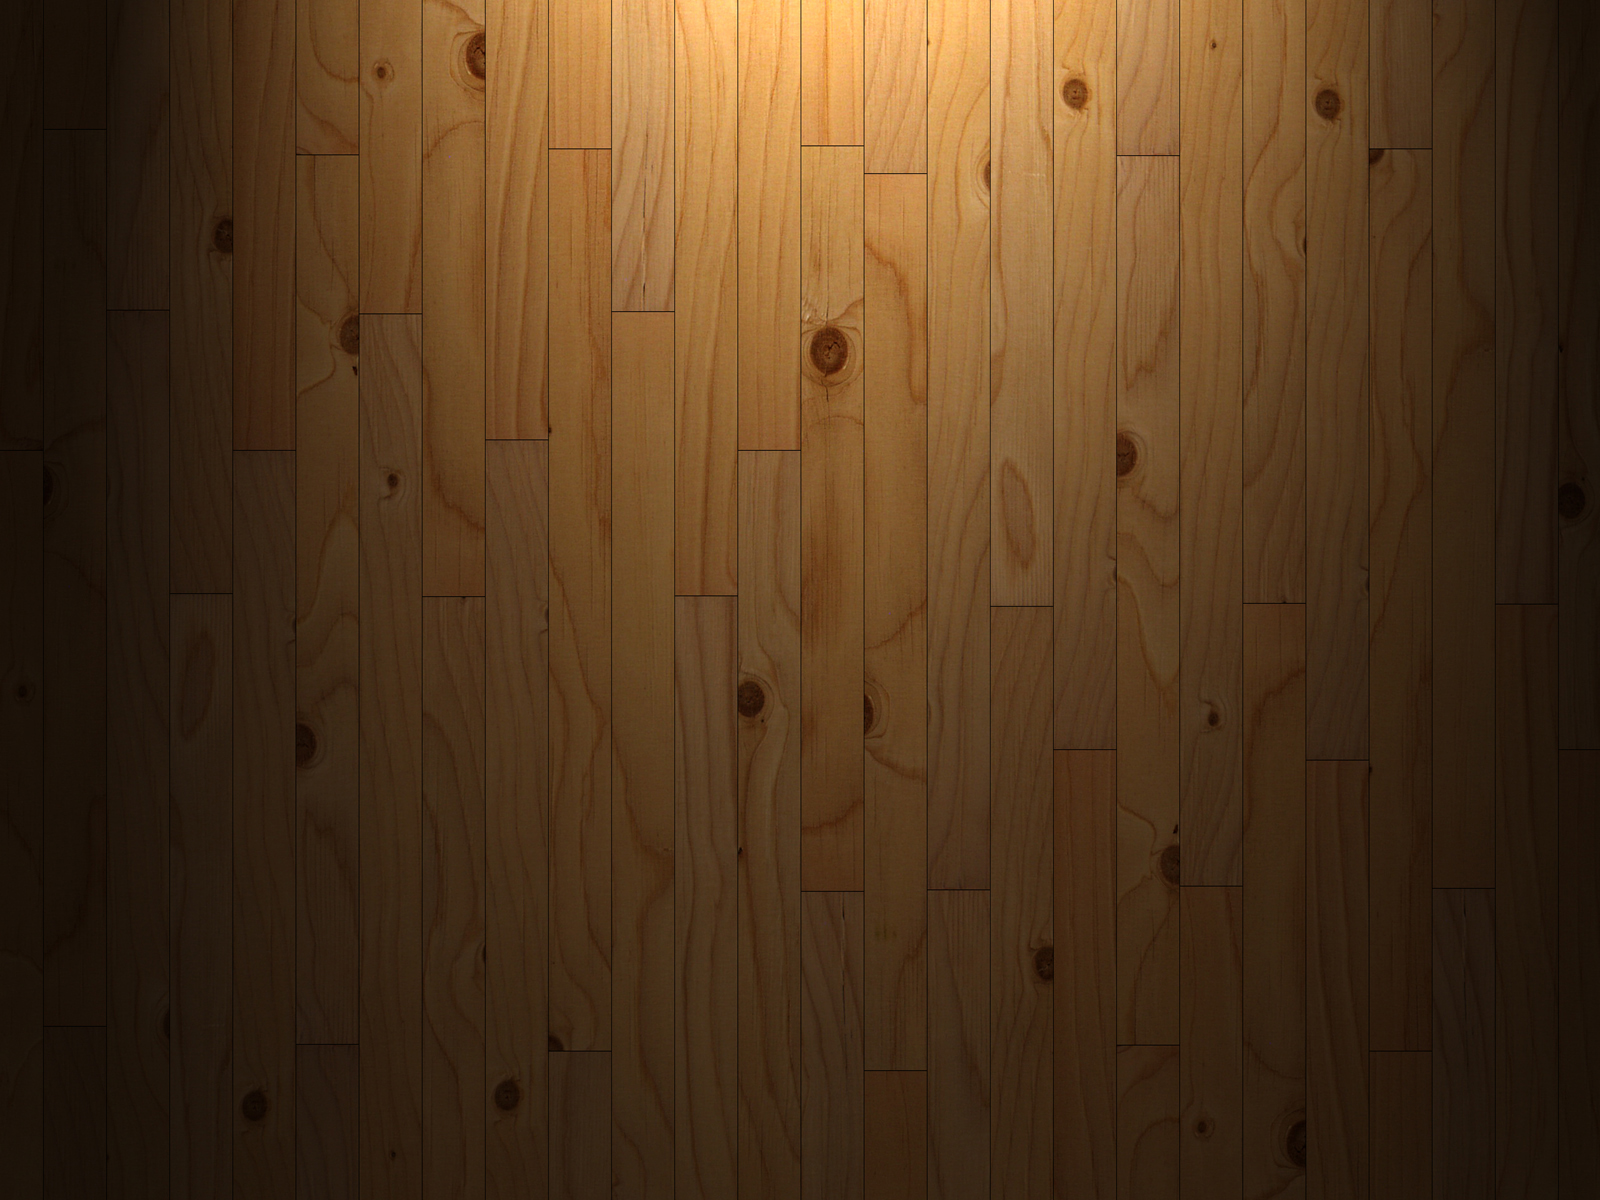 Amazing Wallpaper Home Screen Wood - wallpapers-room_com___parquet_by_2shi_1600x12002  Snapshot_15131.jpg